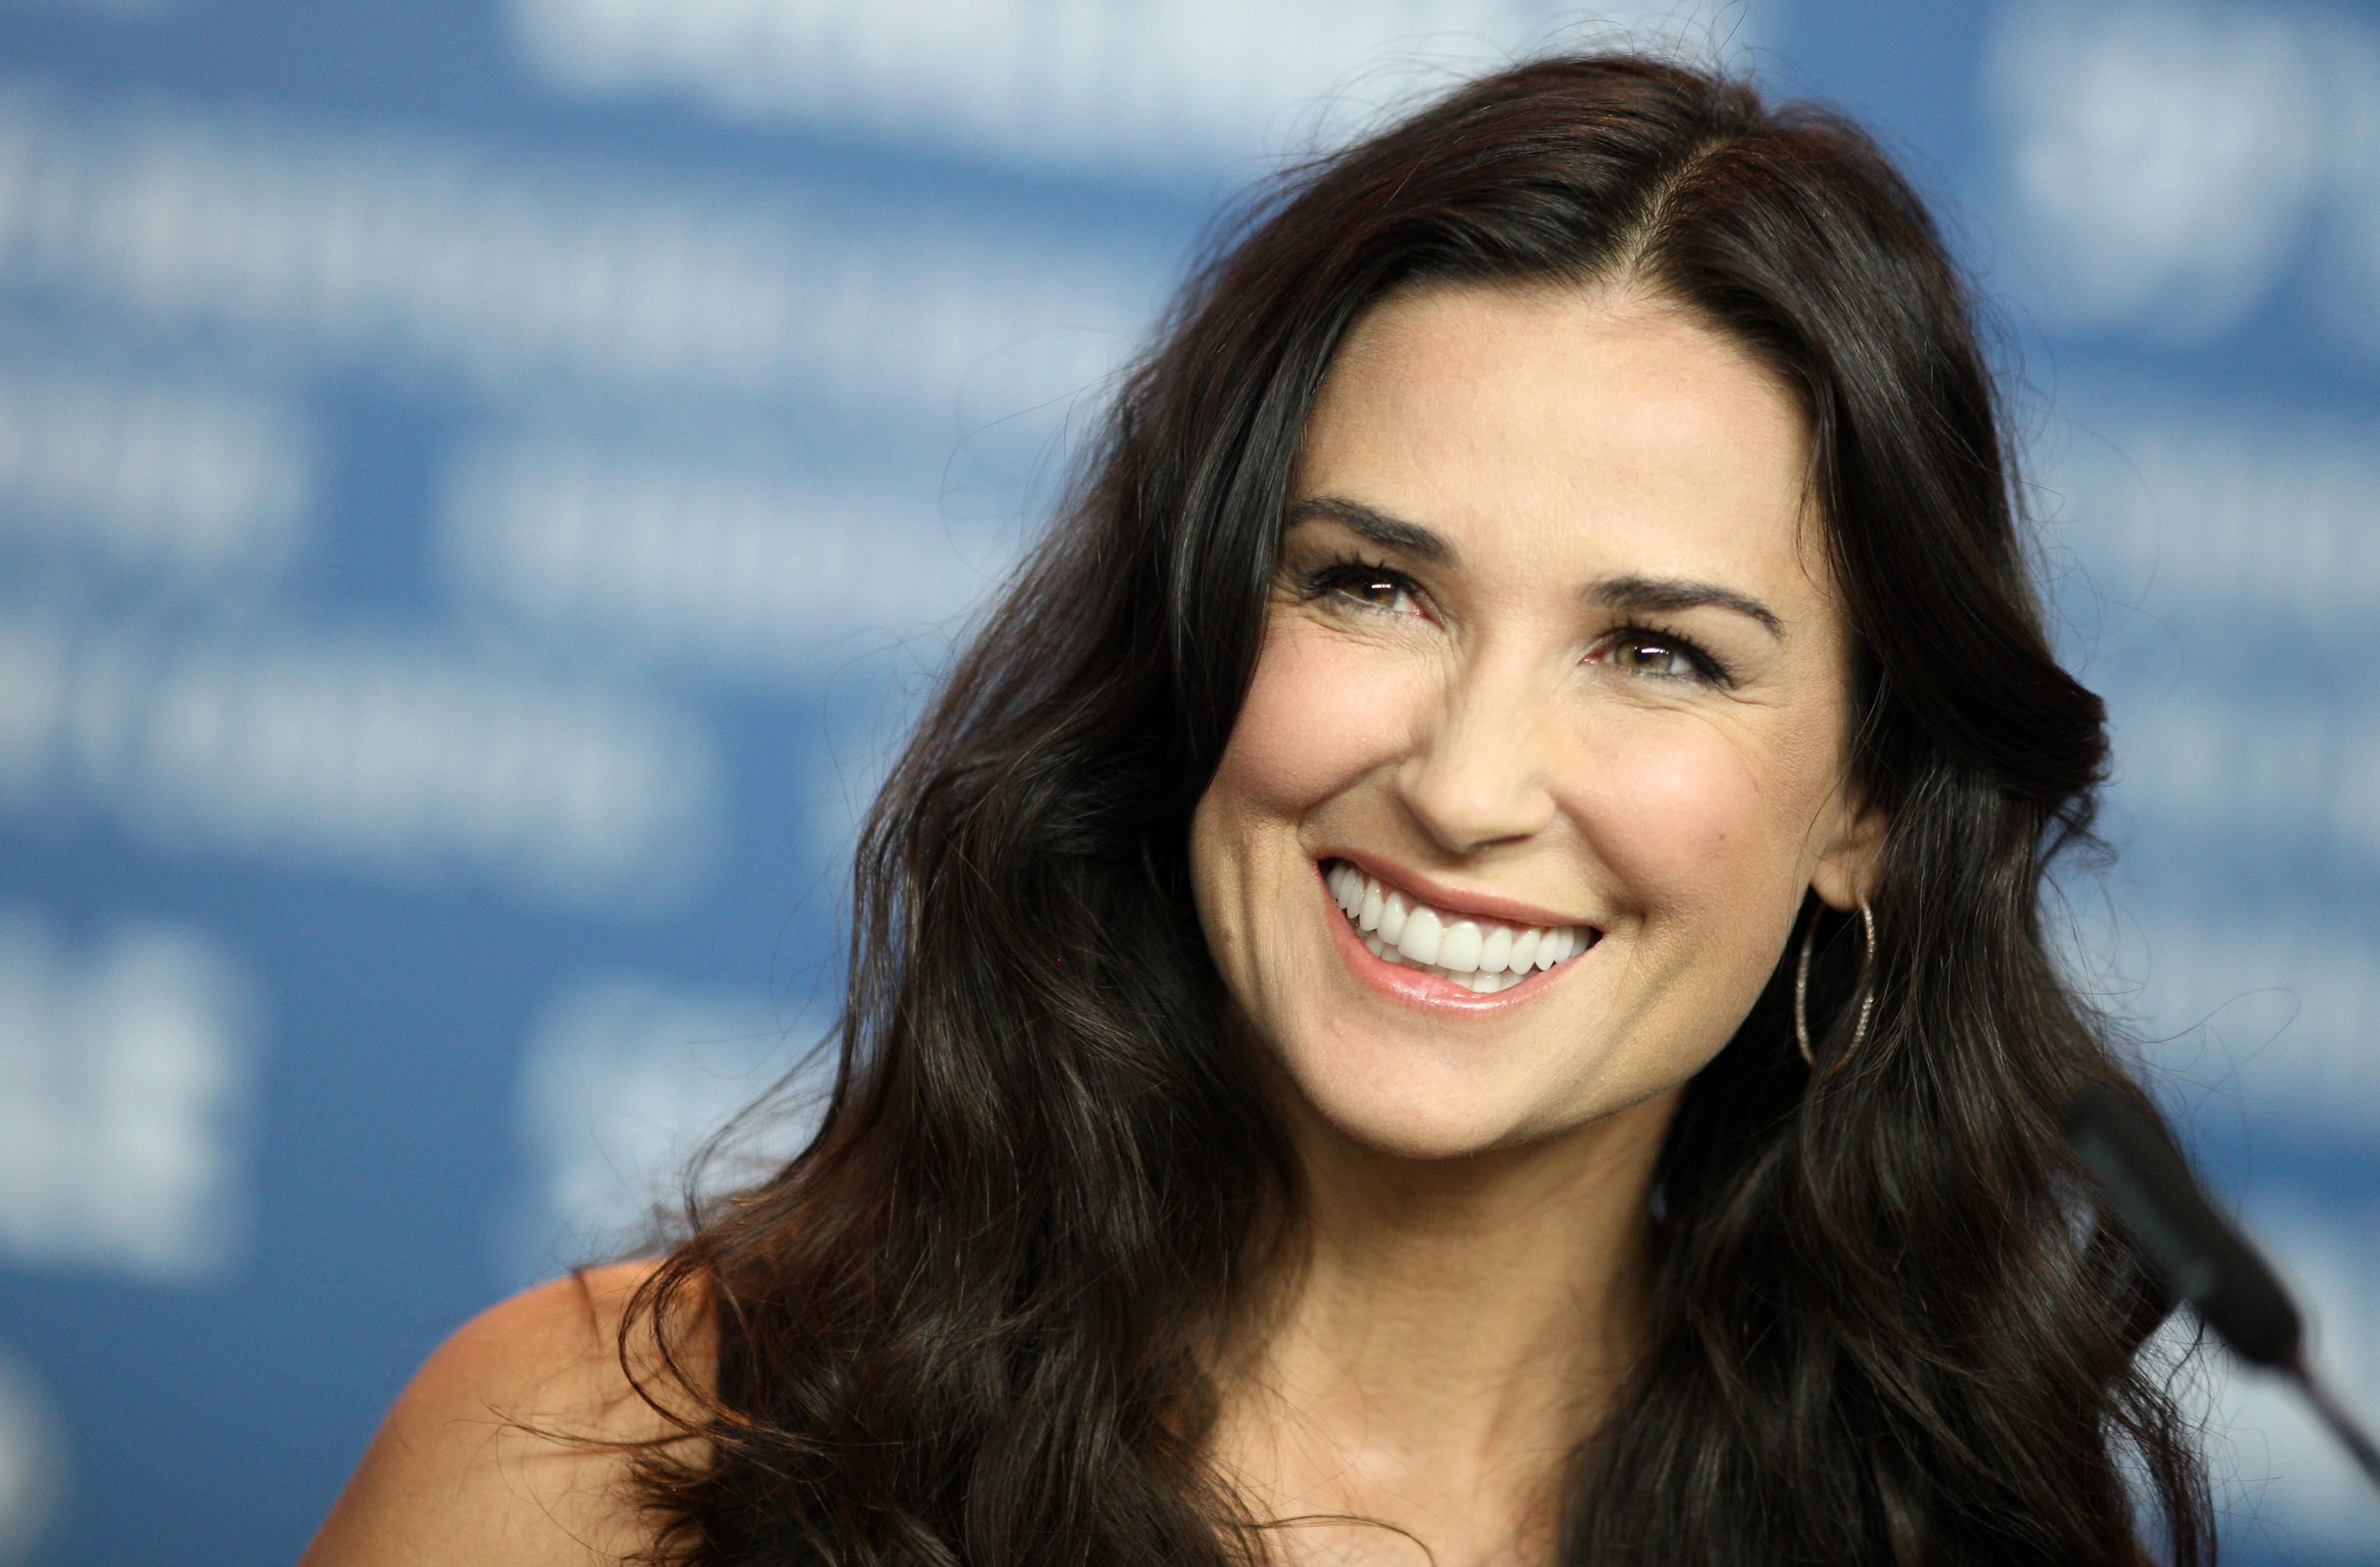 demi moore dating ex father Demi moore was a familiar face to those who witnessed the she grew up believing him to be her biological father the ex-manager of bruce and demi's.